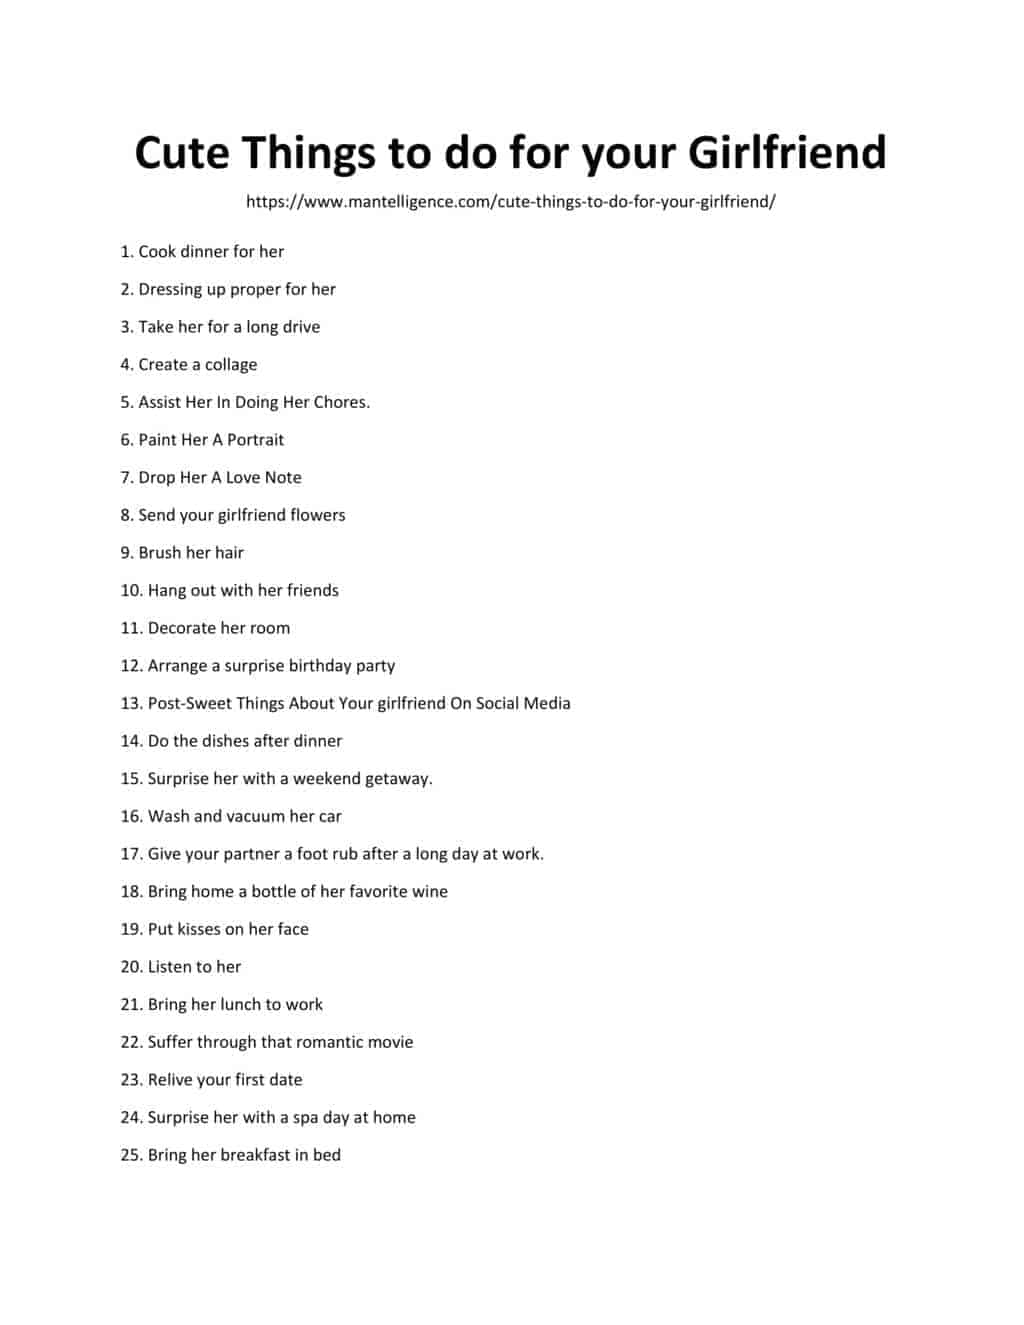 Downloadable List of Cute Things To Do For Your Girlfriend